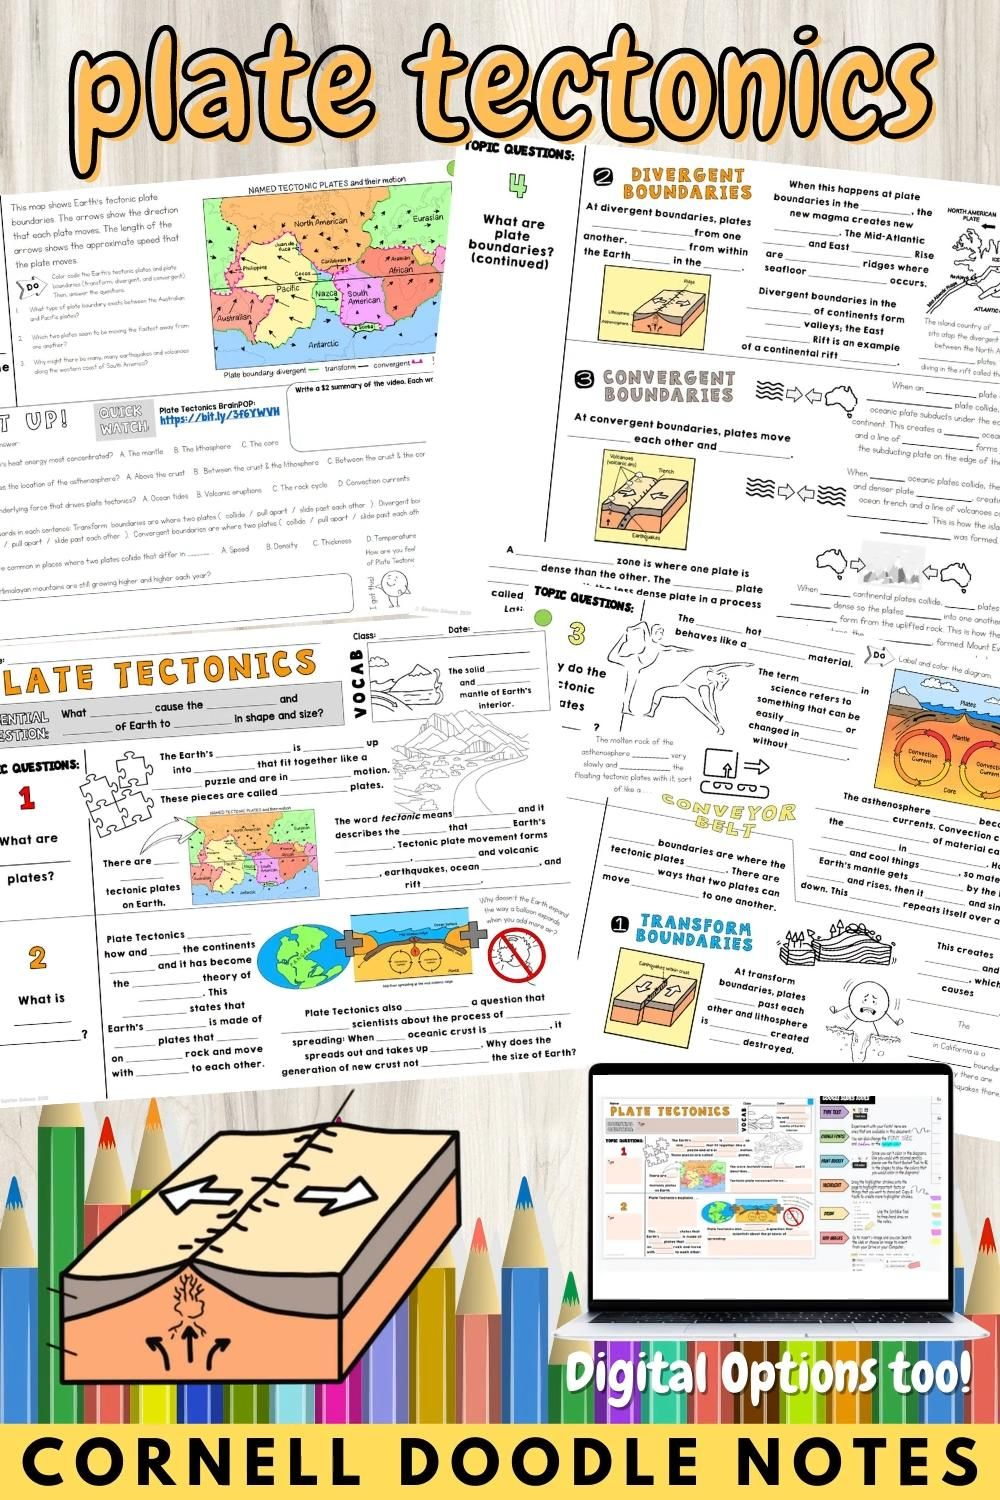 Plate Tectonics Cornell Doodle Notes For Middle School And Homeschool Science Video In 2021 Earth Science Middle School Doodle Notes Plate Tectonics [ 1500 x 1000 Pixel ]